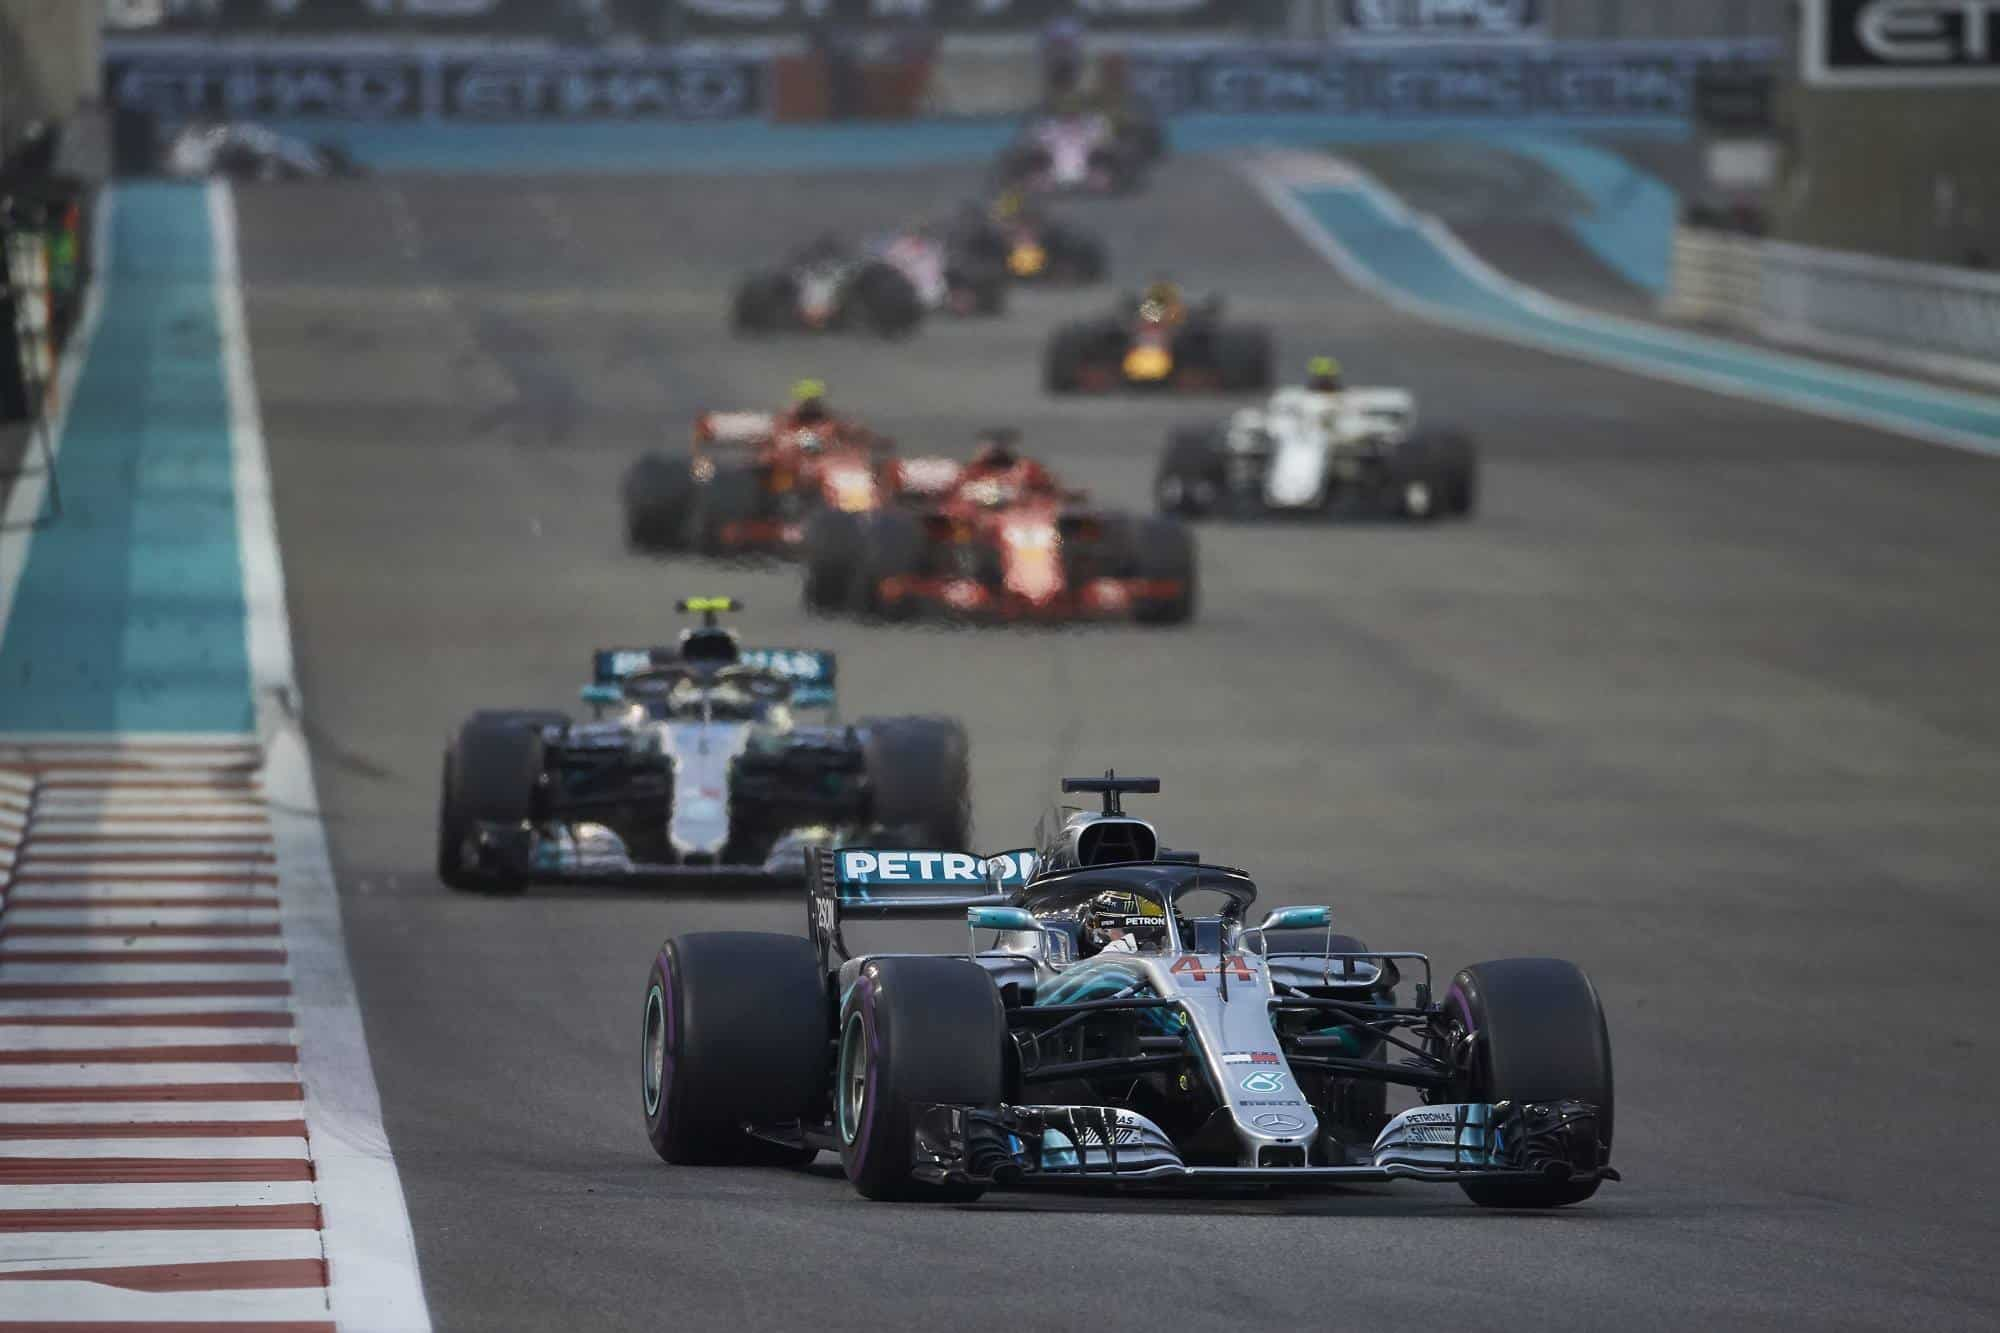 Hamilton leads Bottas Vettel Raikkonen Abu Dhabi GP F1 2018 Photo Daimler